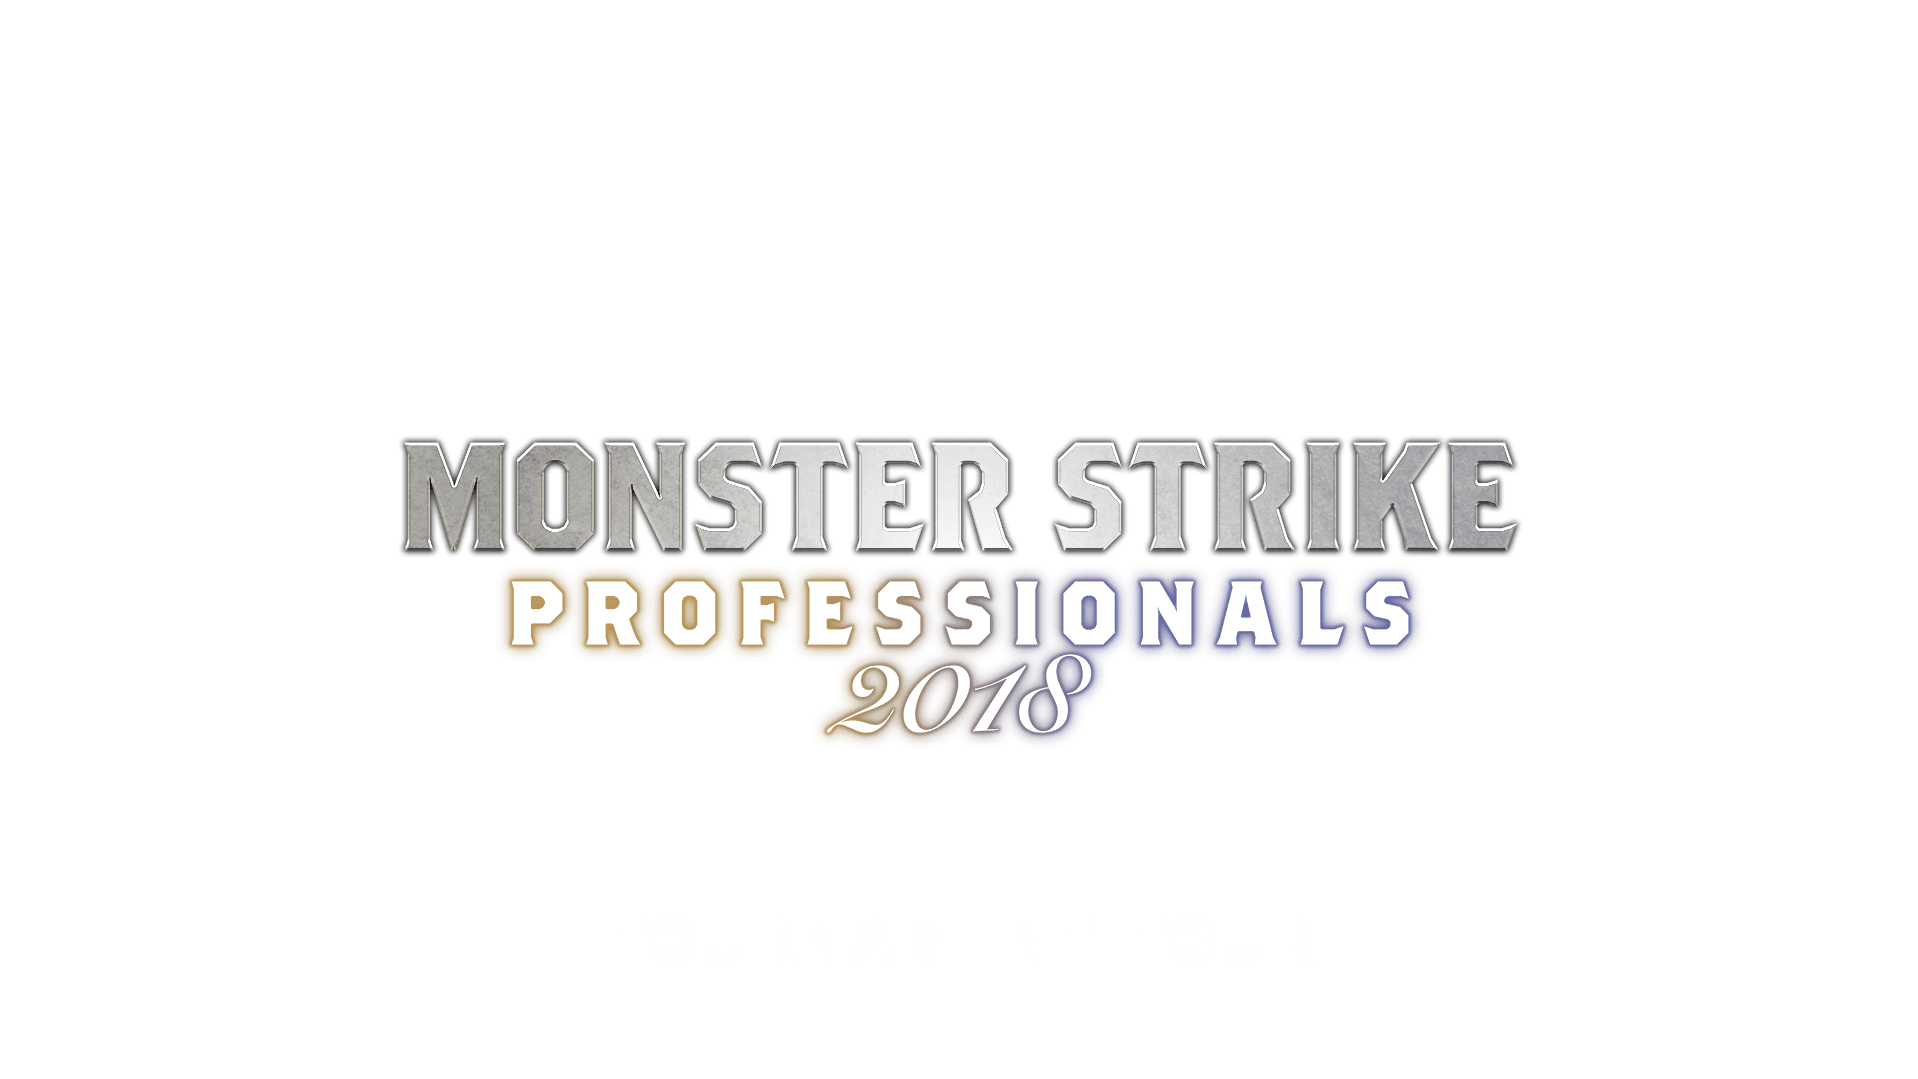 MONSTER STRIKE PROFESSIONALS 2018 TOURNAMENT TOUR